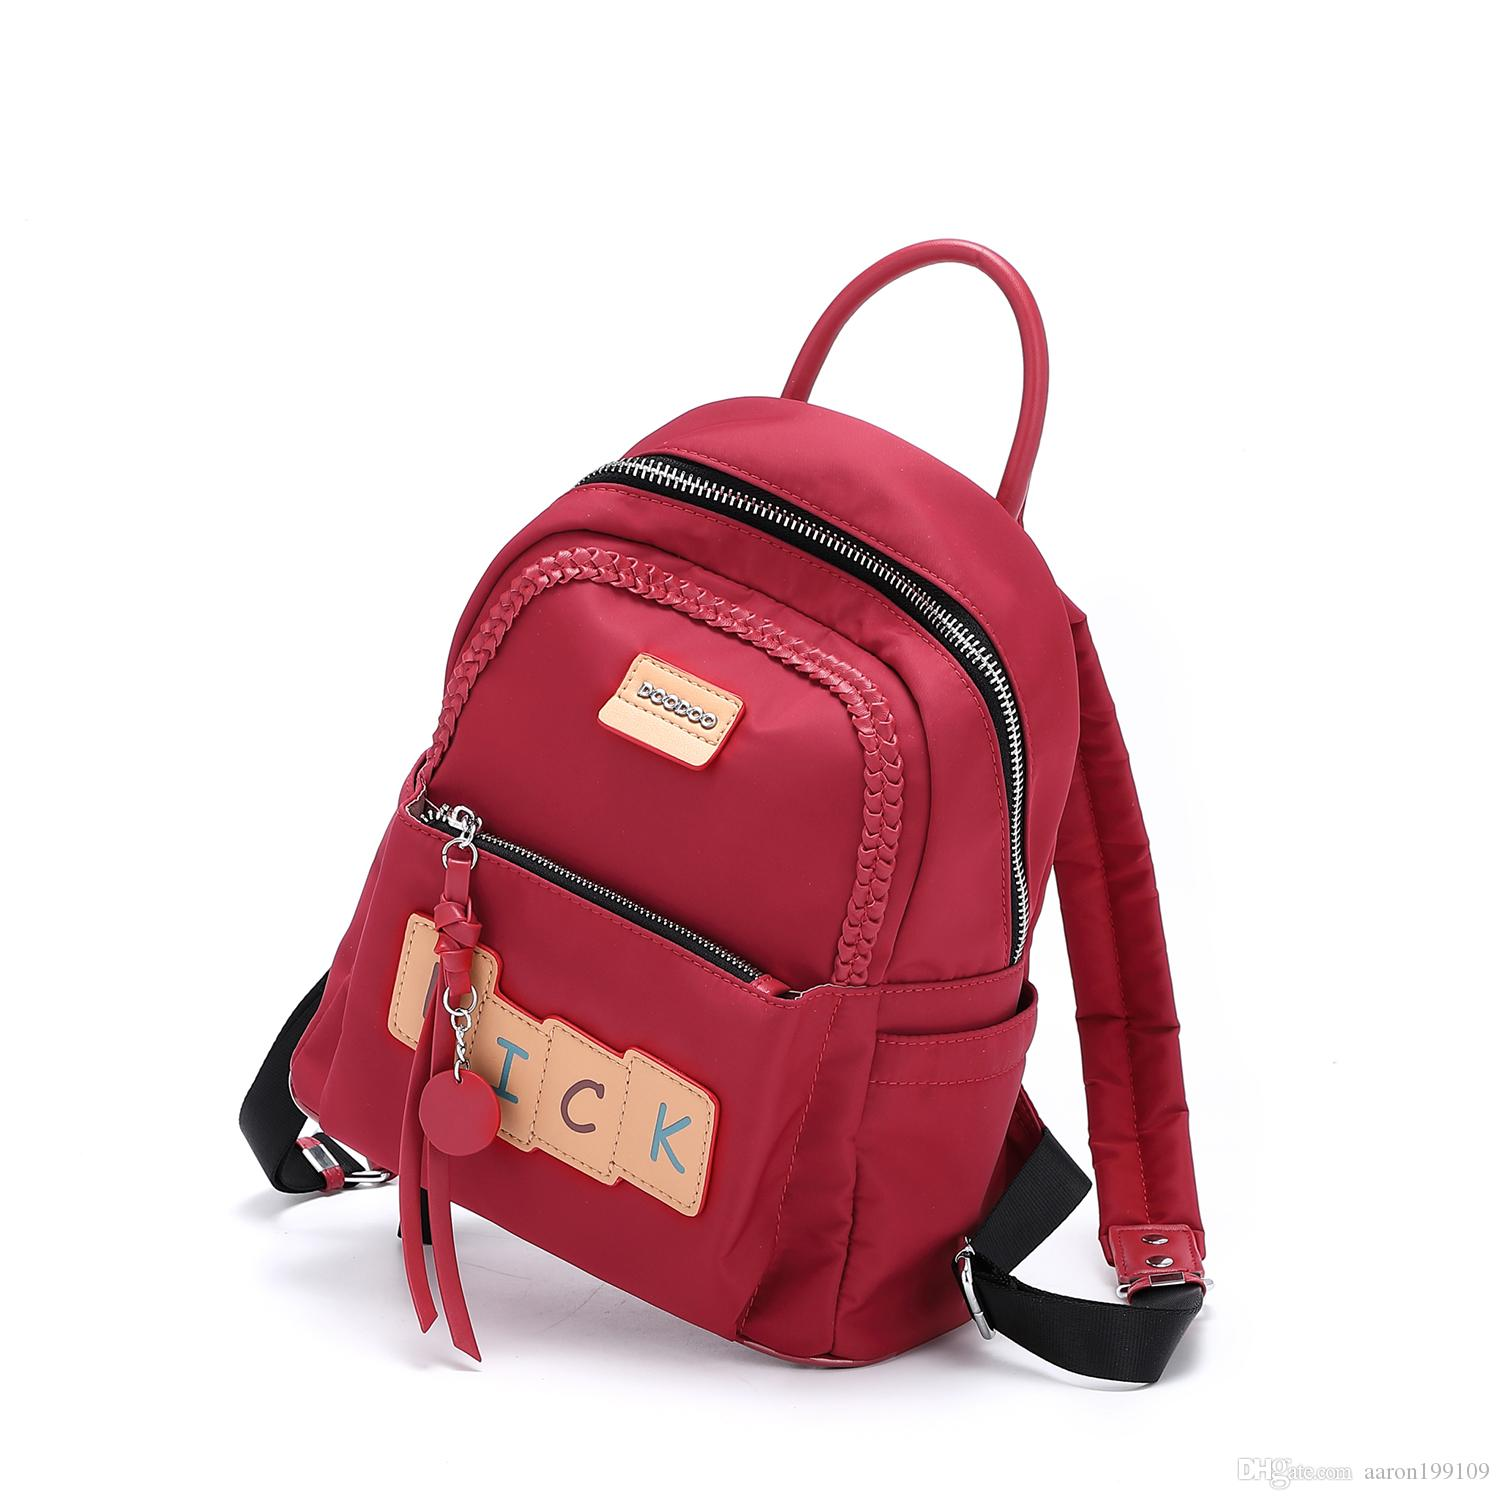 fe60370f563e 2019 Europe Fashion Function Schoolbag Female Students Backpack Junior High School  Backpacks Computer Bag Swagger Backpack Army Backpack Water Backpack From  ...